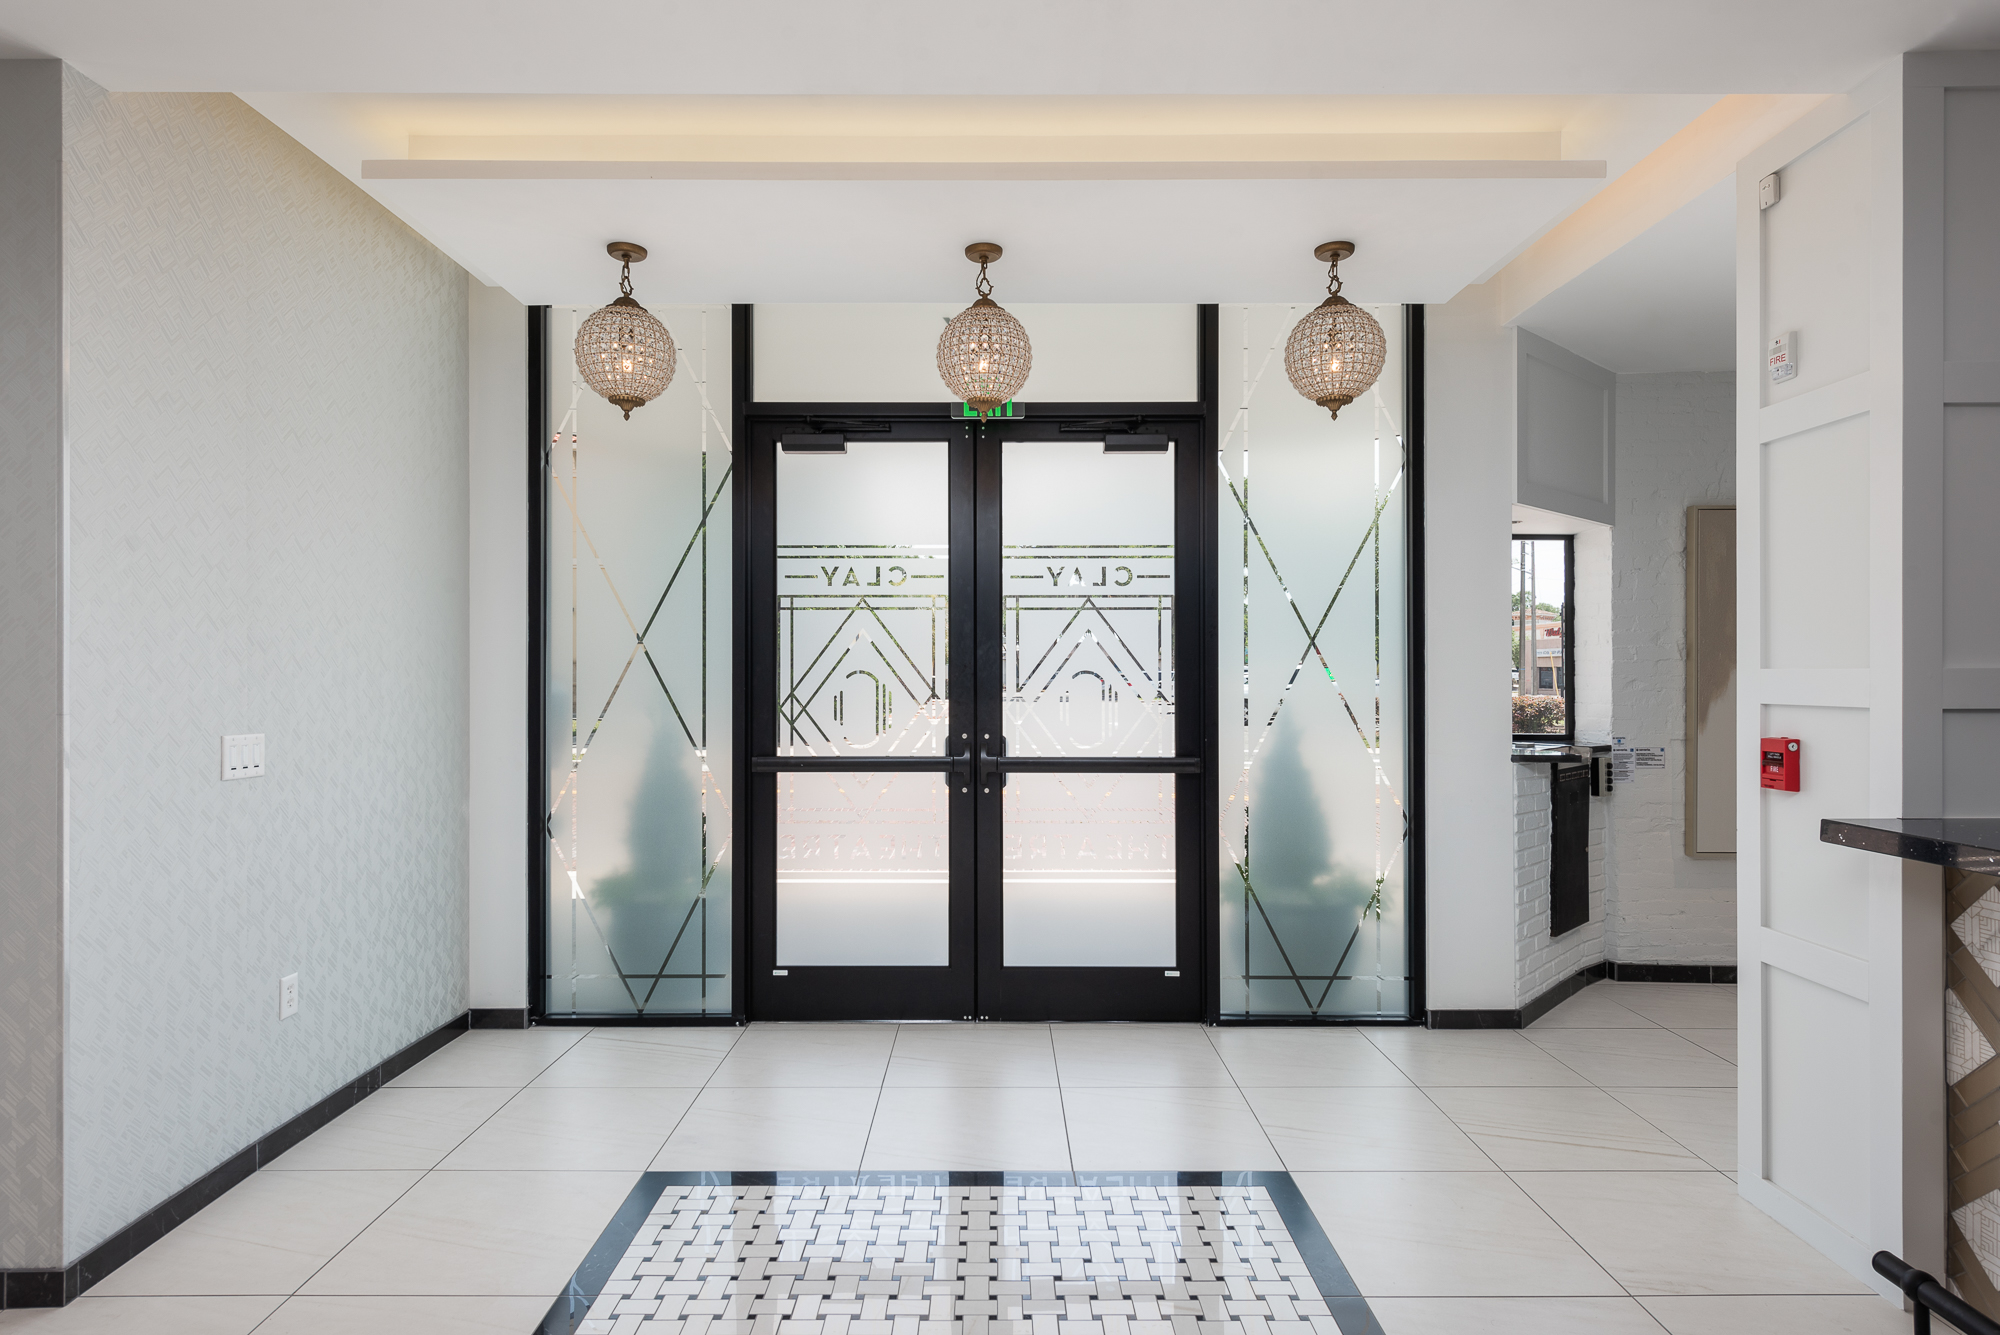 Micamy Design Studio_Interior Design_Clay Theatre_Event Space_Venue_Marble Floors_Art Deco_Modern_Marble Tile_Entryway_Tile Design_Circa Ligthing.jpg